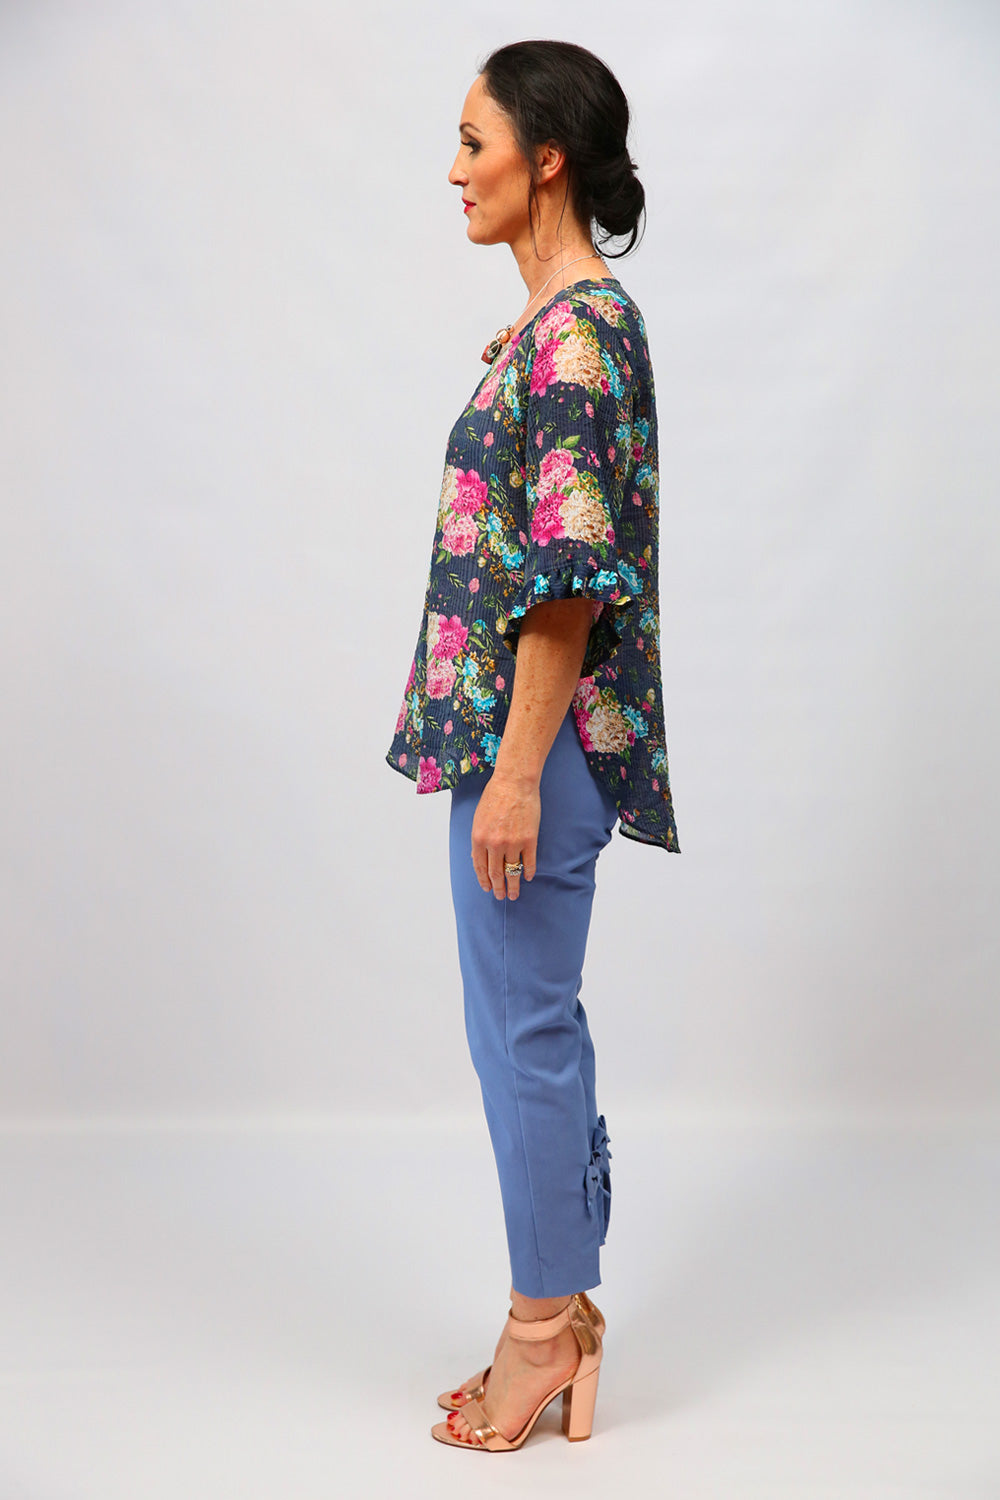 Orbit Tara Pant | Annah Stretton | On Trend | Relaxed Fit | Designer